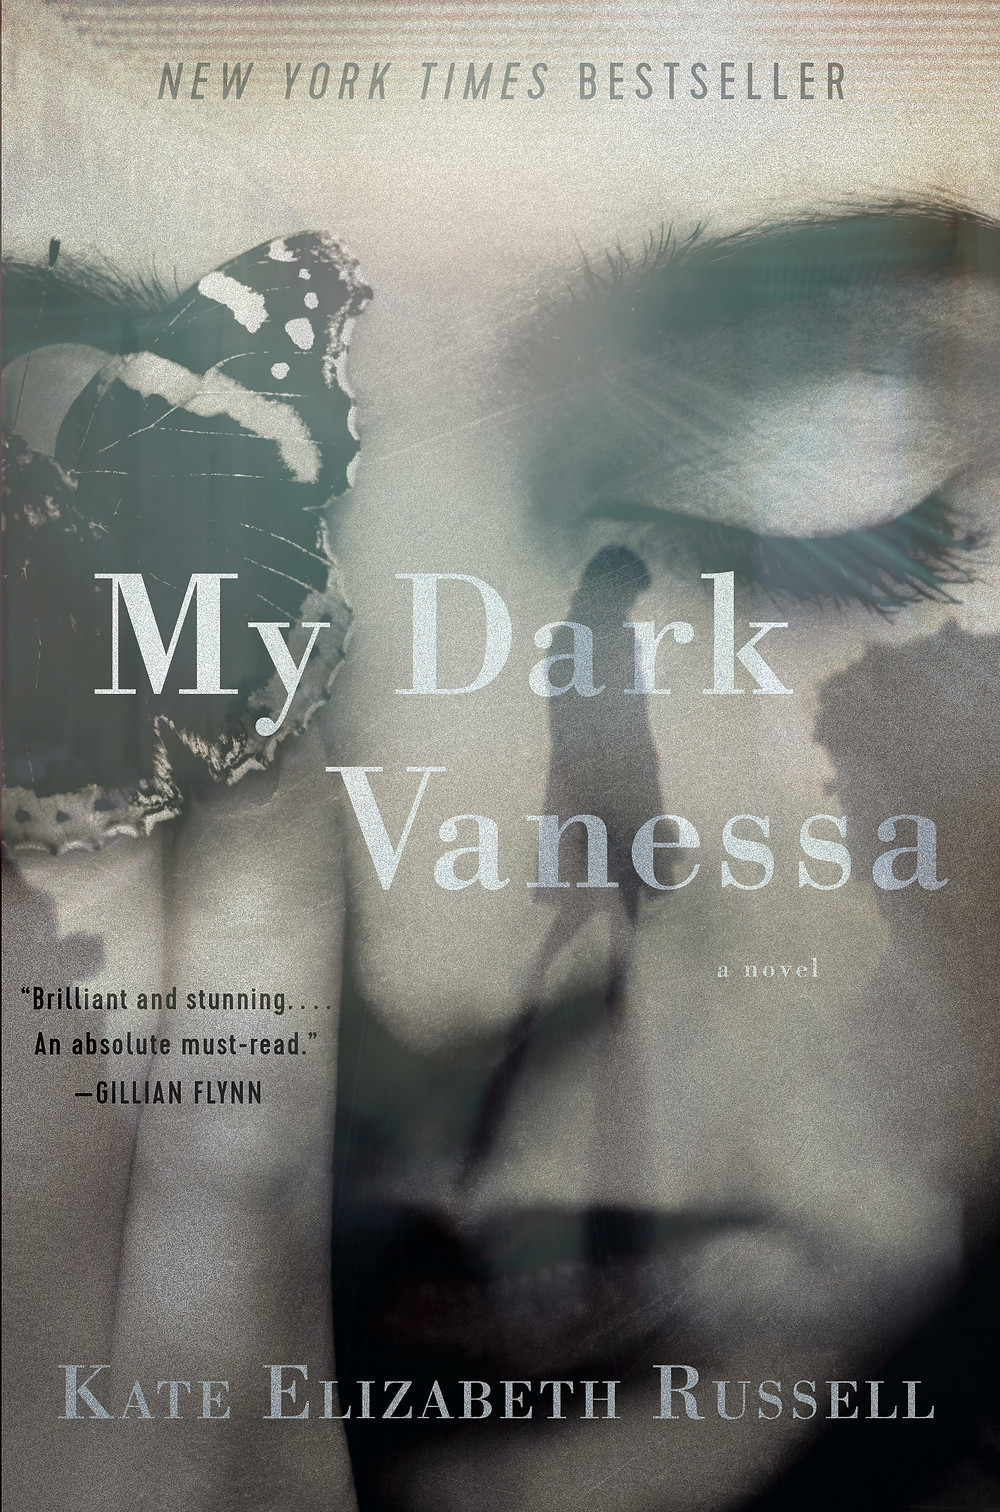 Dark Whispers From The Edge: Kate Elizabeth Russell's My Dark Vanessa Review